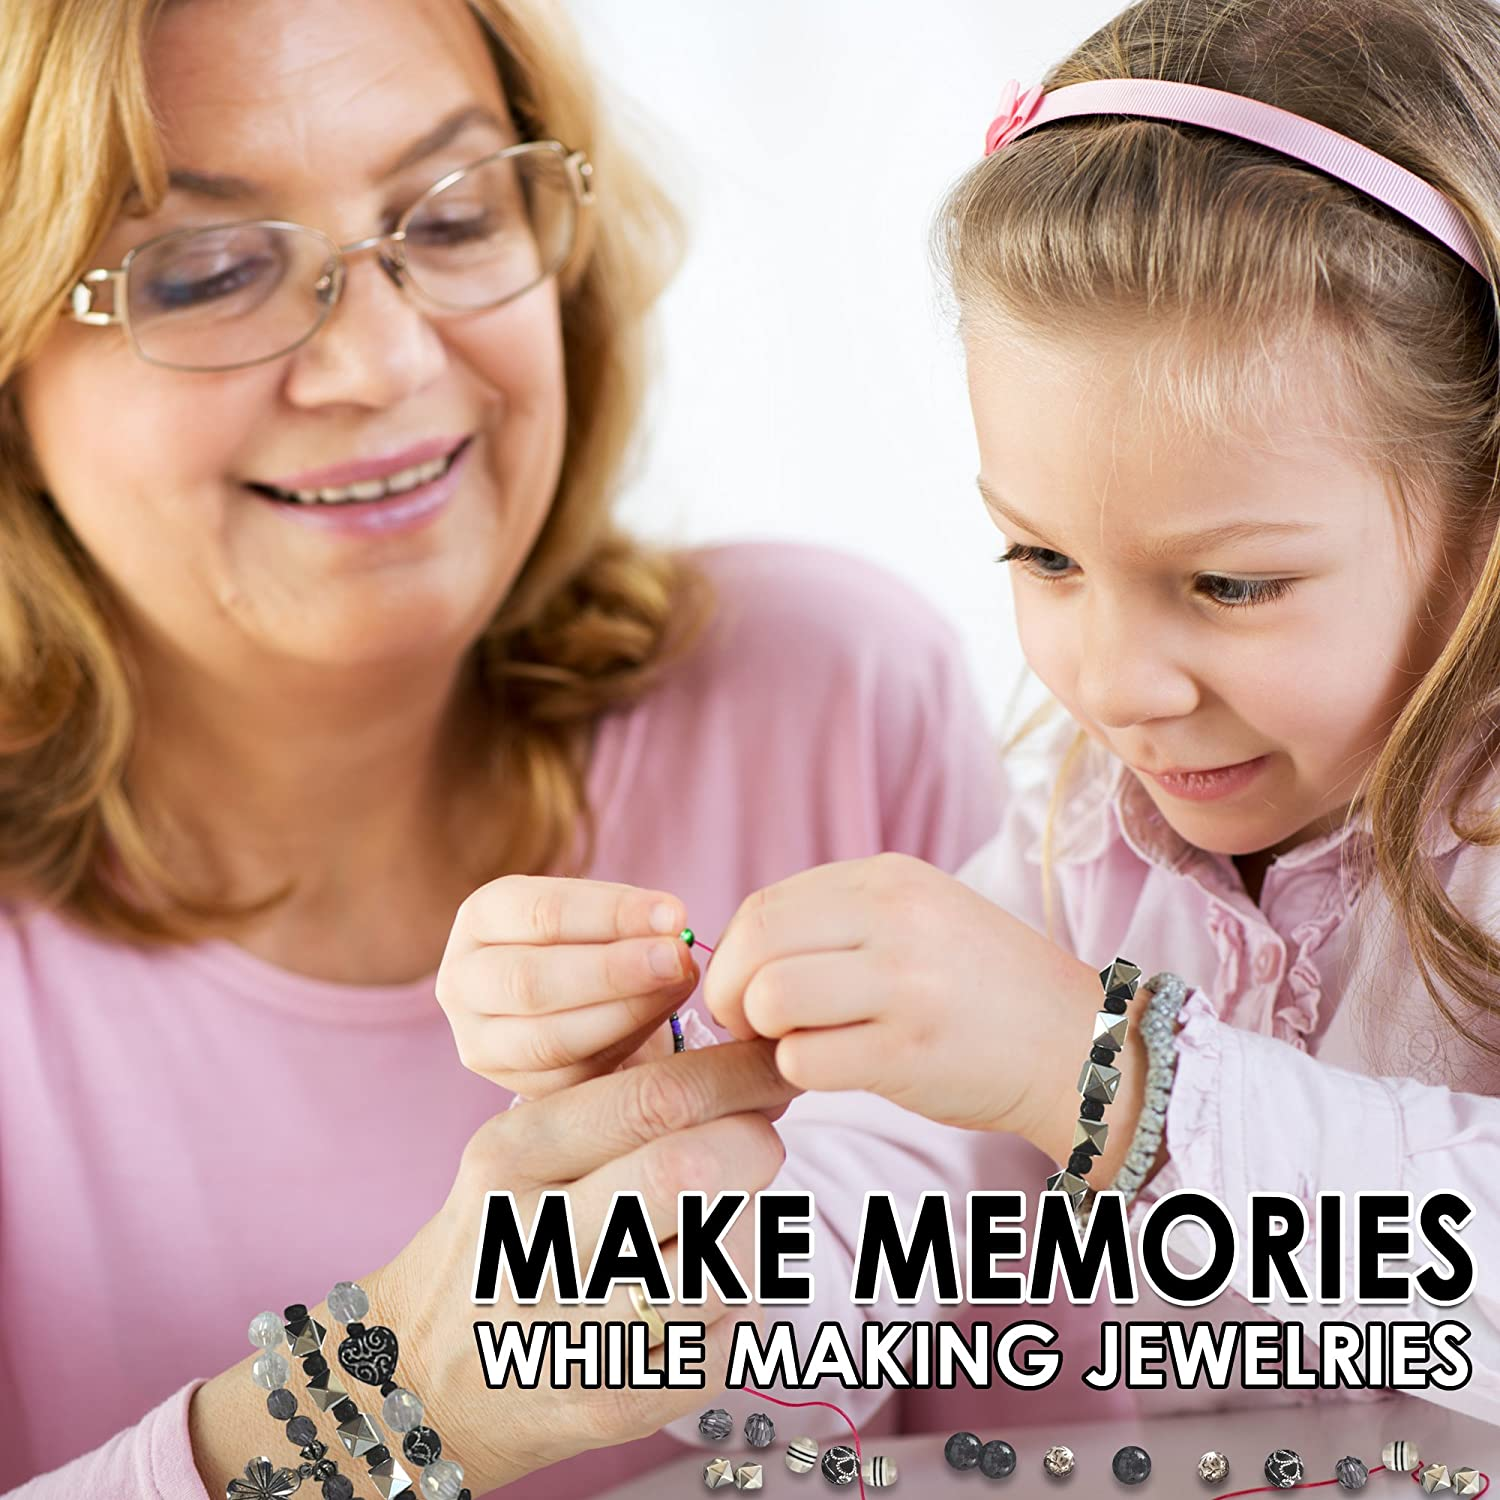 Girls and Teens Will Love Exploring Their Creativity Jewelry Making Kit Everything Included in This Beginners Jewelry kit Directions and Sample Ideas Included with This Blue and Green Bead kit.